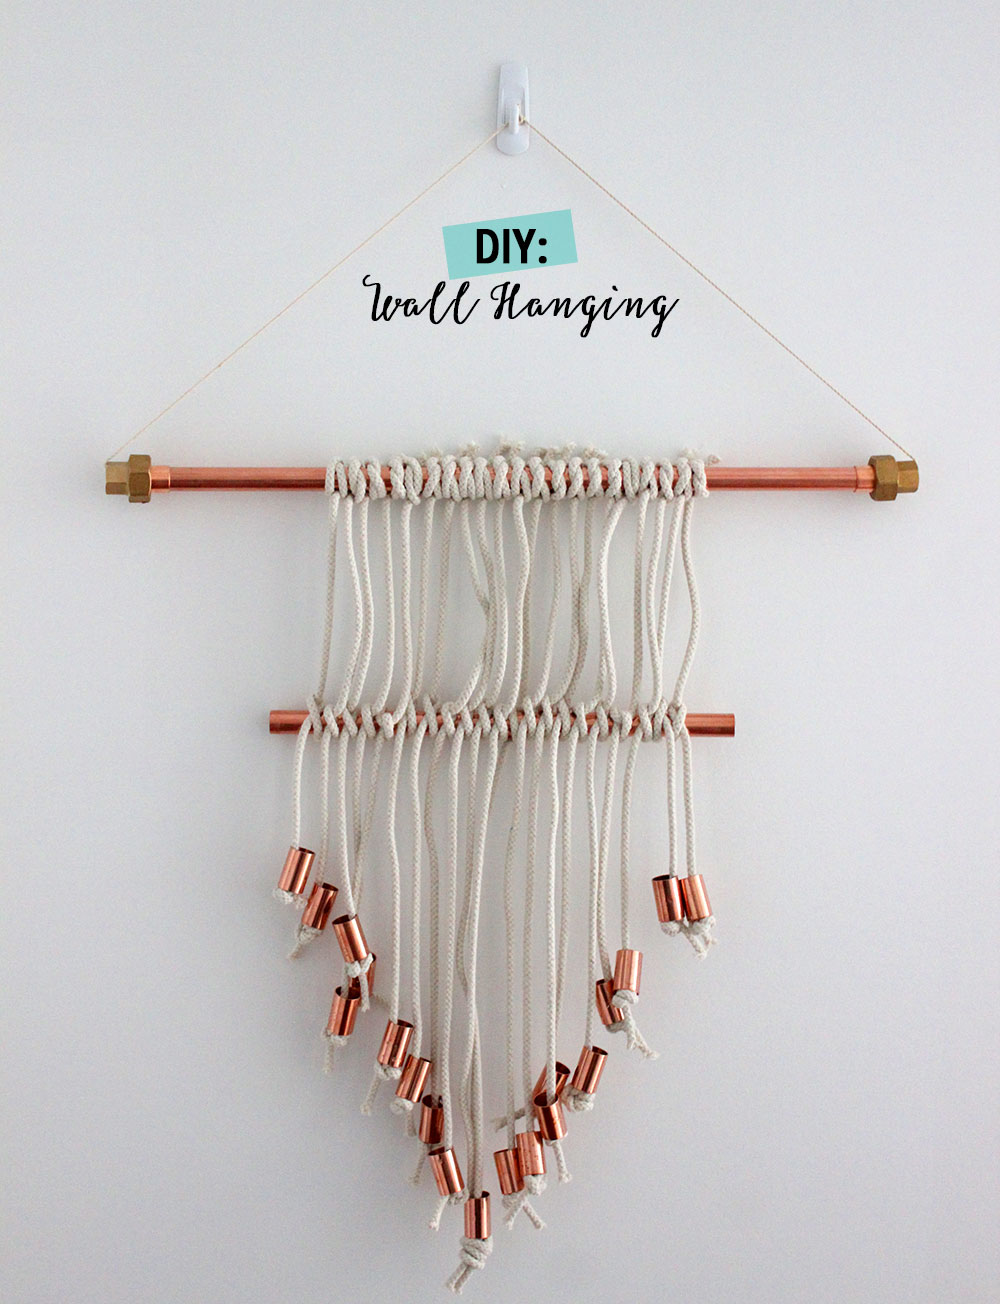 DIY: Easy Wall Hanging